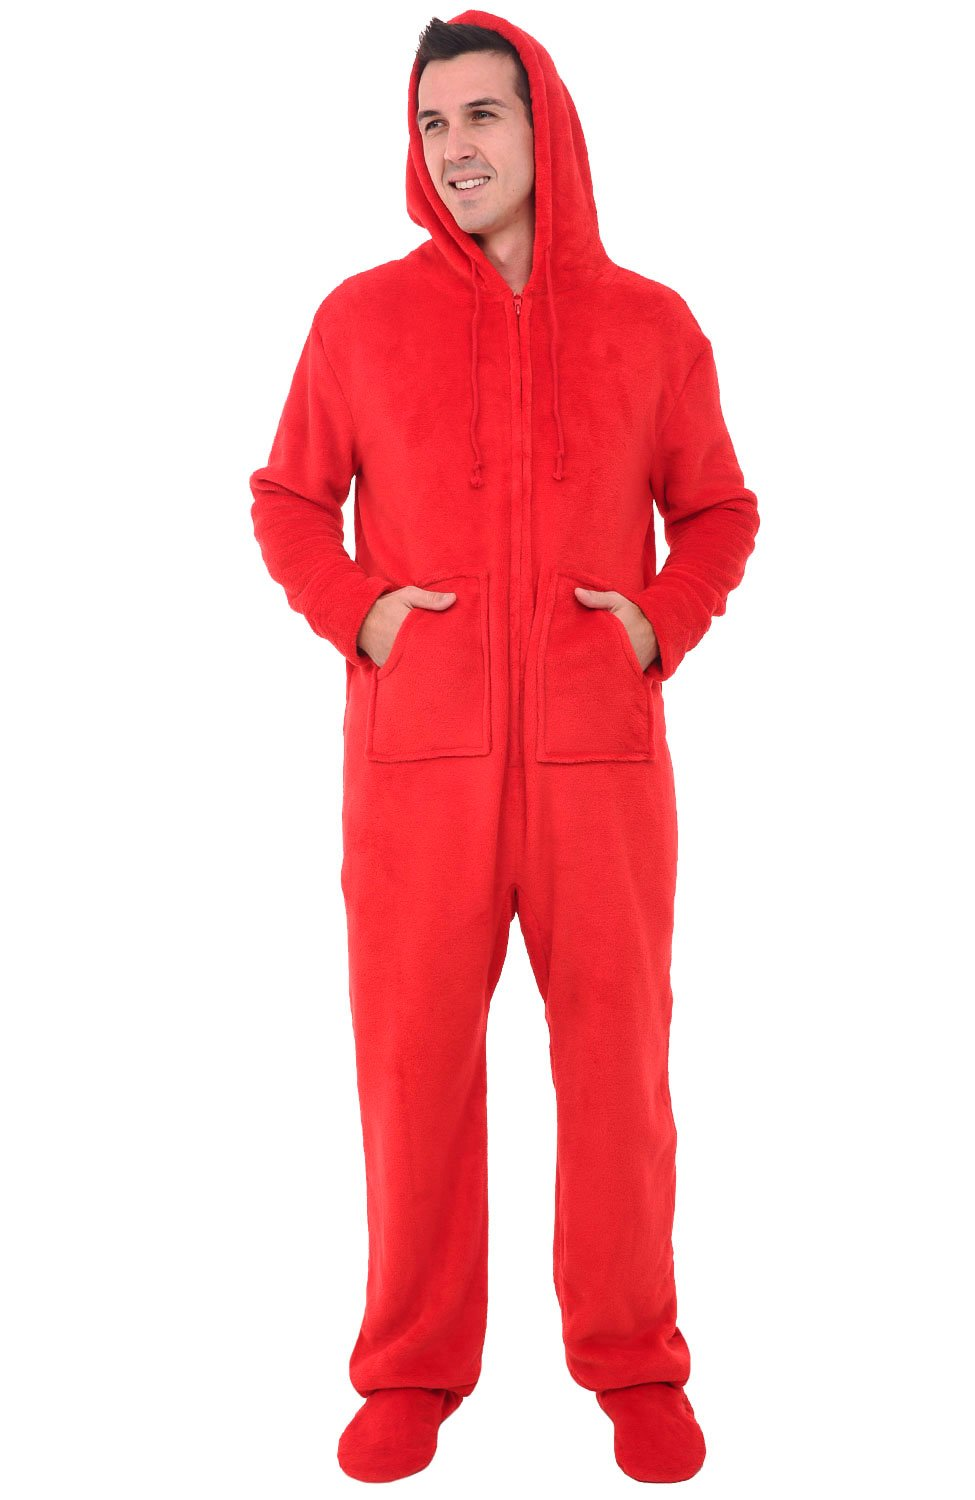 Alexander Del Rossa Mens Fleece Solid Colored Onesie, Hooded Footed Jumpsuit Pajamas A0320-Solid